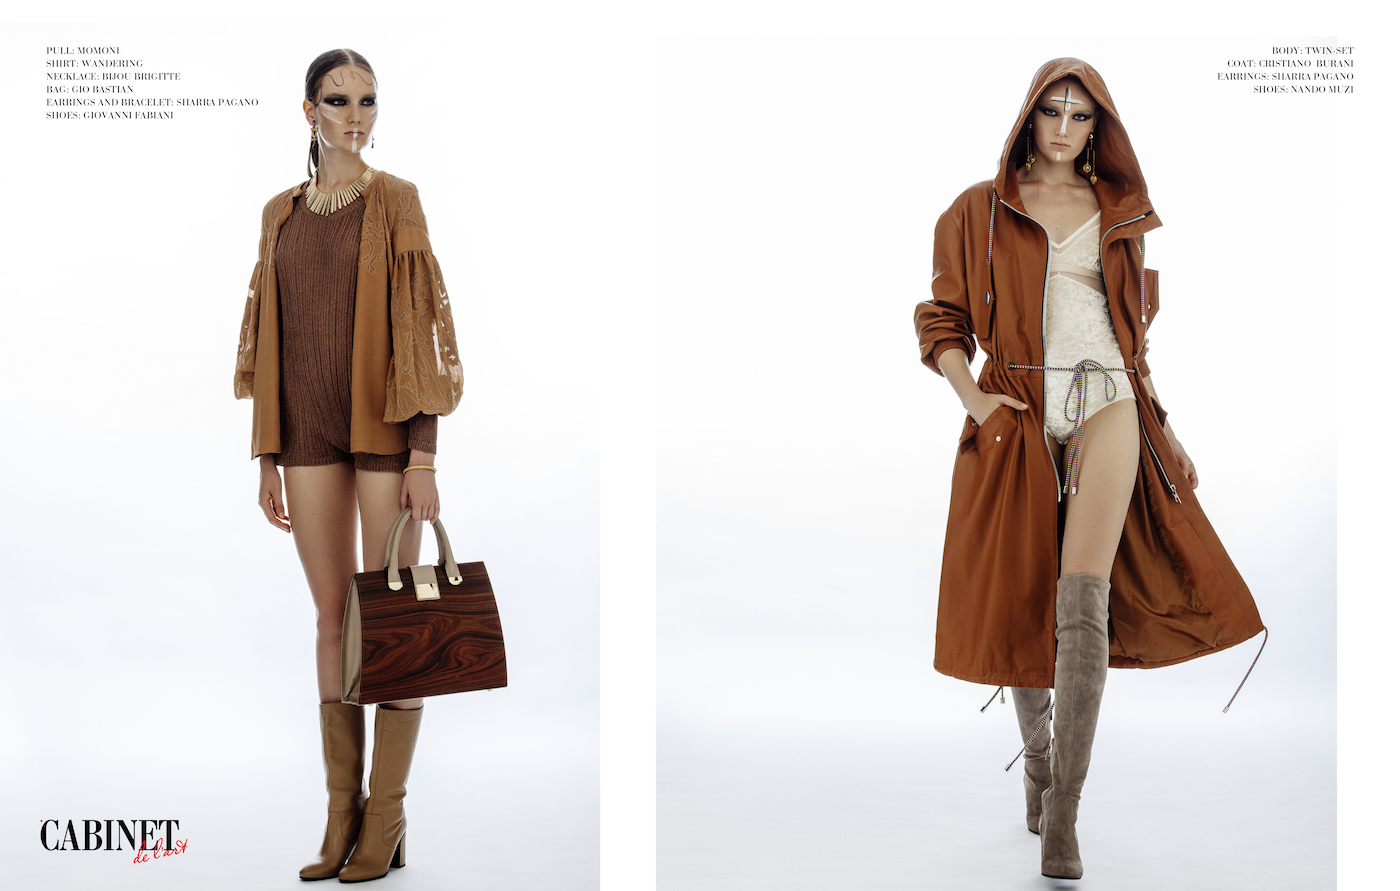 On the left:pull: Momoni, shirt: Wandering, necklace: Bijou Brigitte, bag: Gio Bastian, earrings and bracelet: Sharra Pagano, shoes: Giovanni Fabiani; on the right: body: Twin-set, coat: Cristiano Burani, earrings: Sharra Pagano, shoes: Nando Muzi